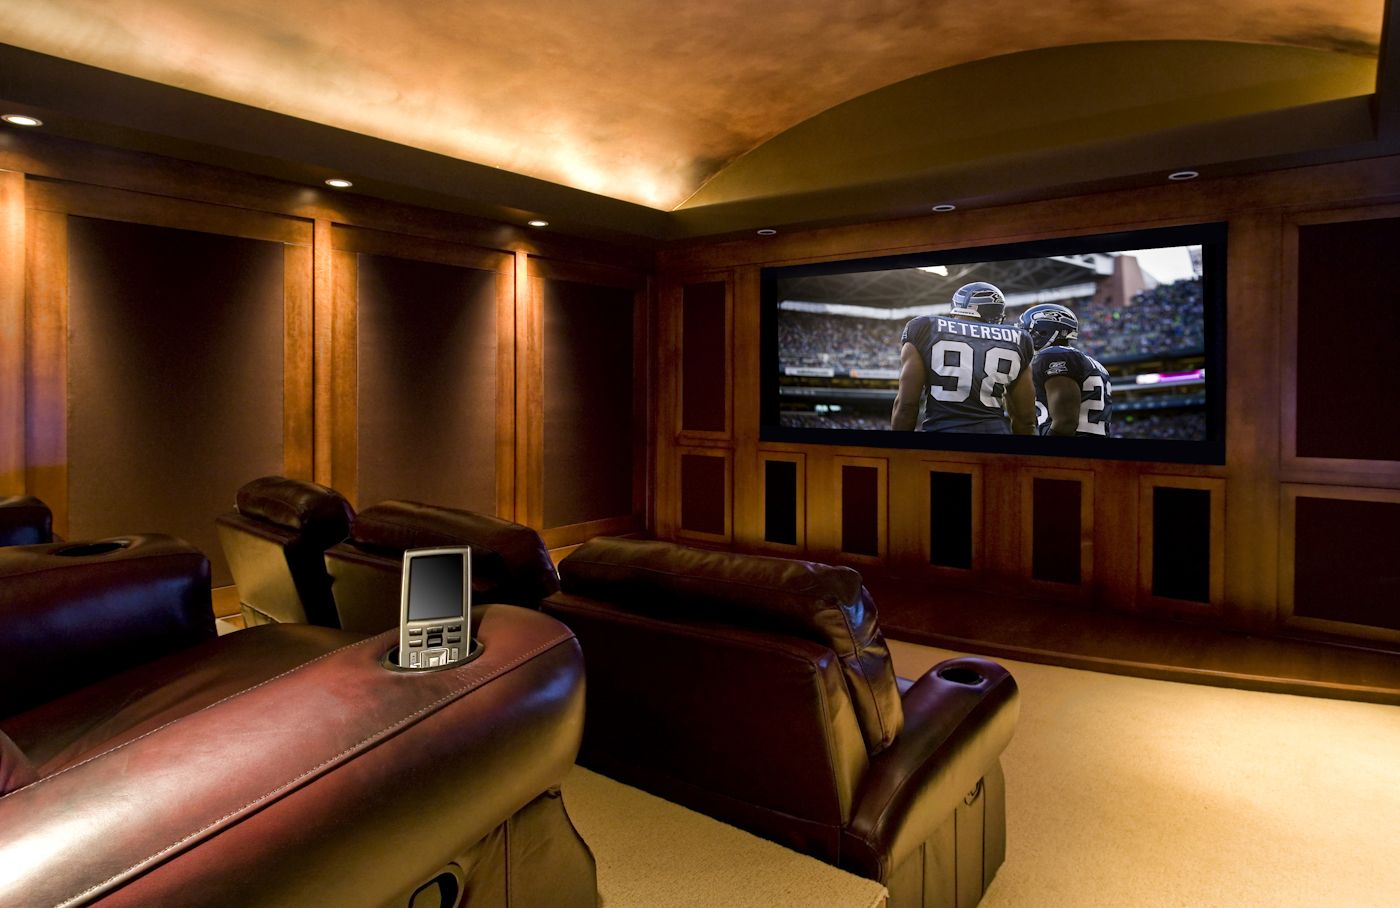 Media room ideas for the home pinterest room ideas for Man cave designer